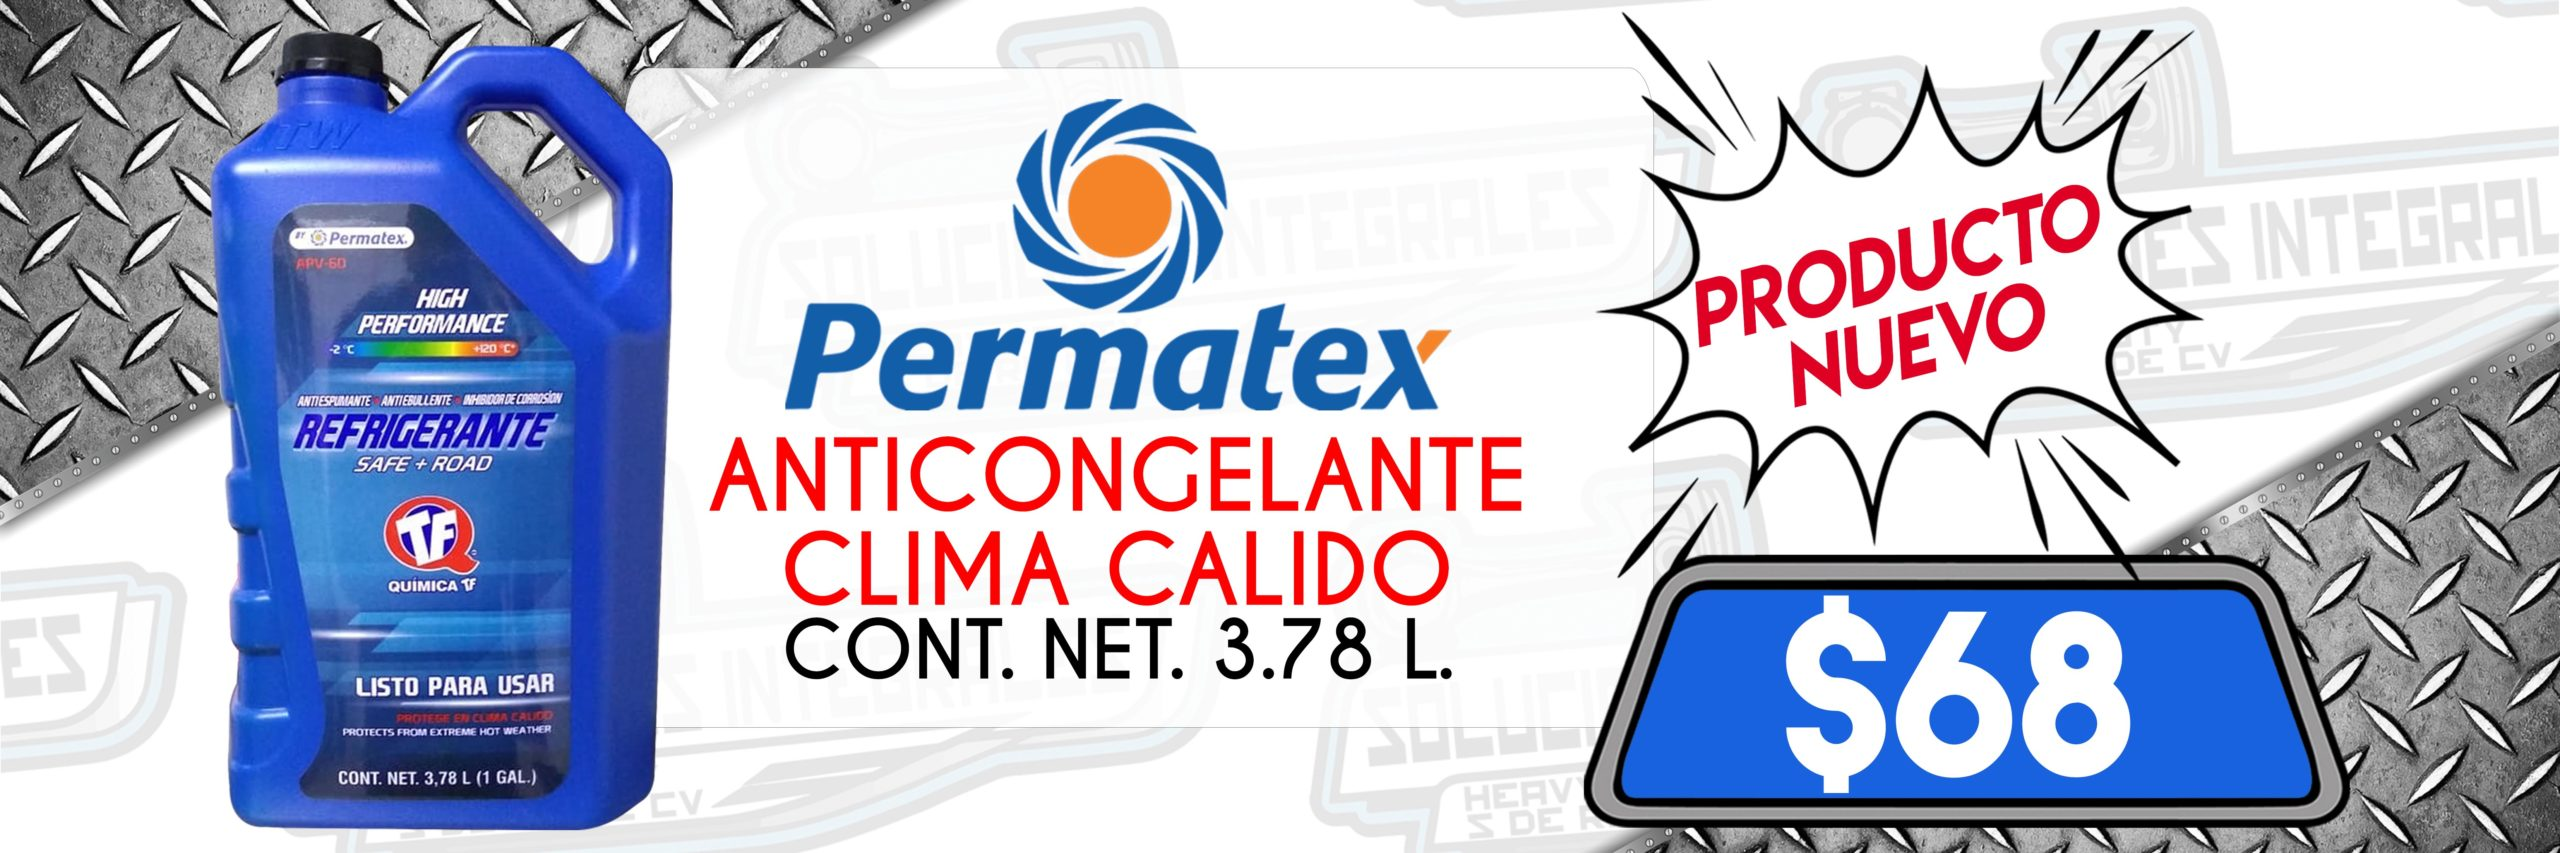 ANTICONGELANTE PERMATEX